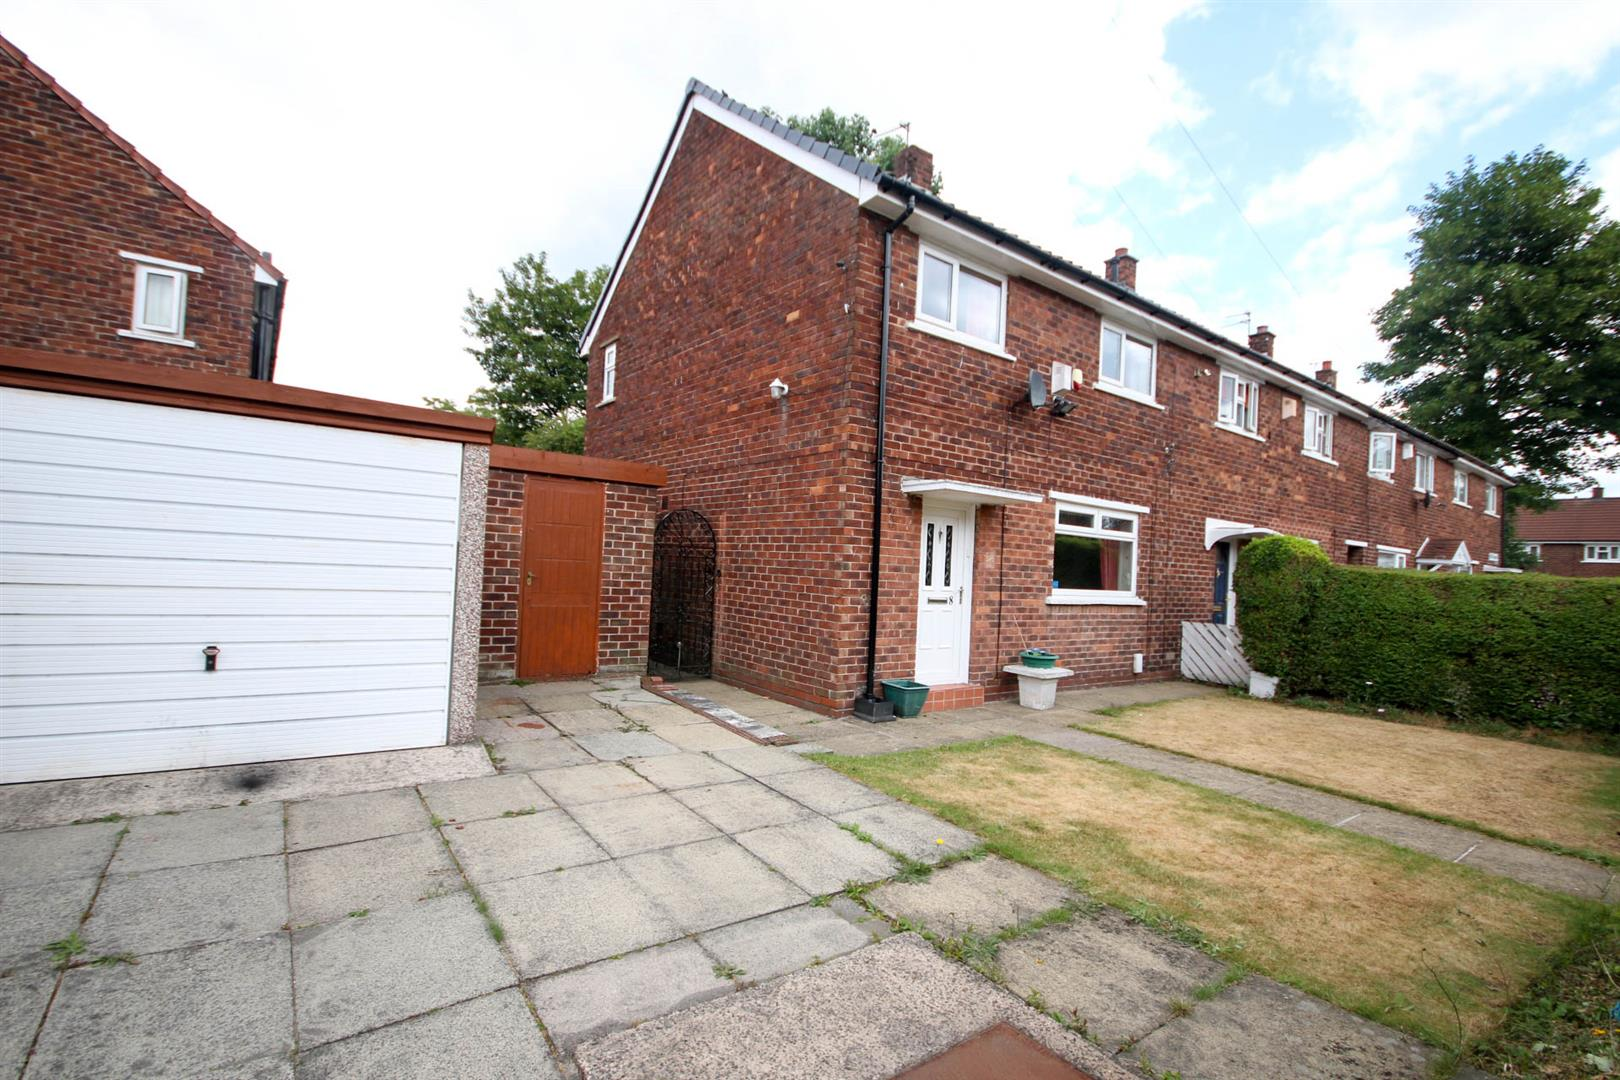 3 Bedroom House - End Terrace For Sale